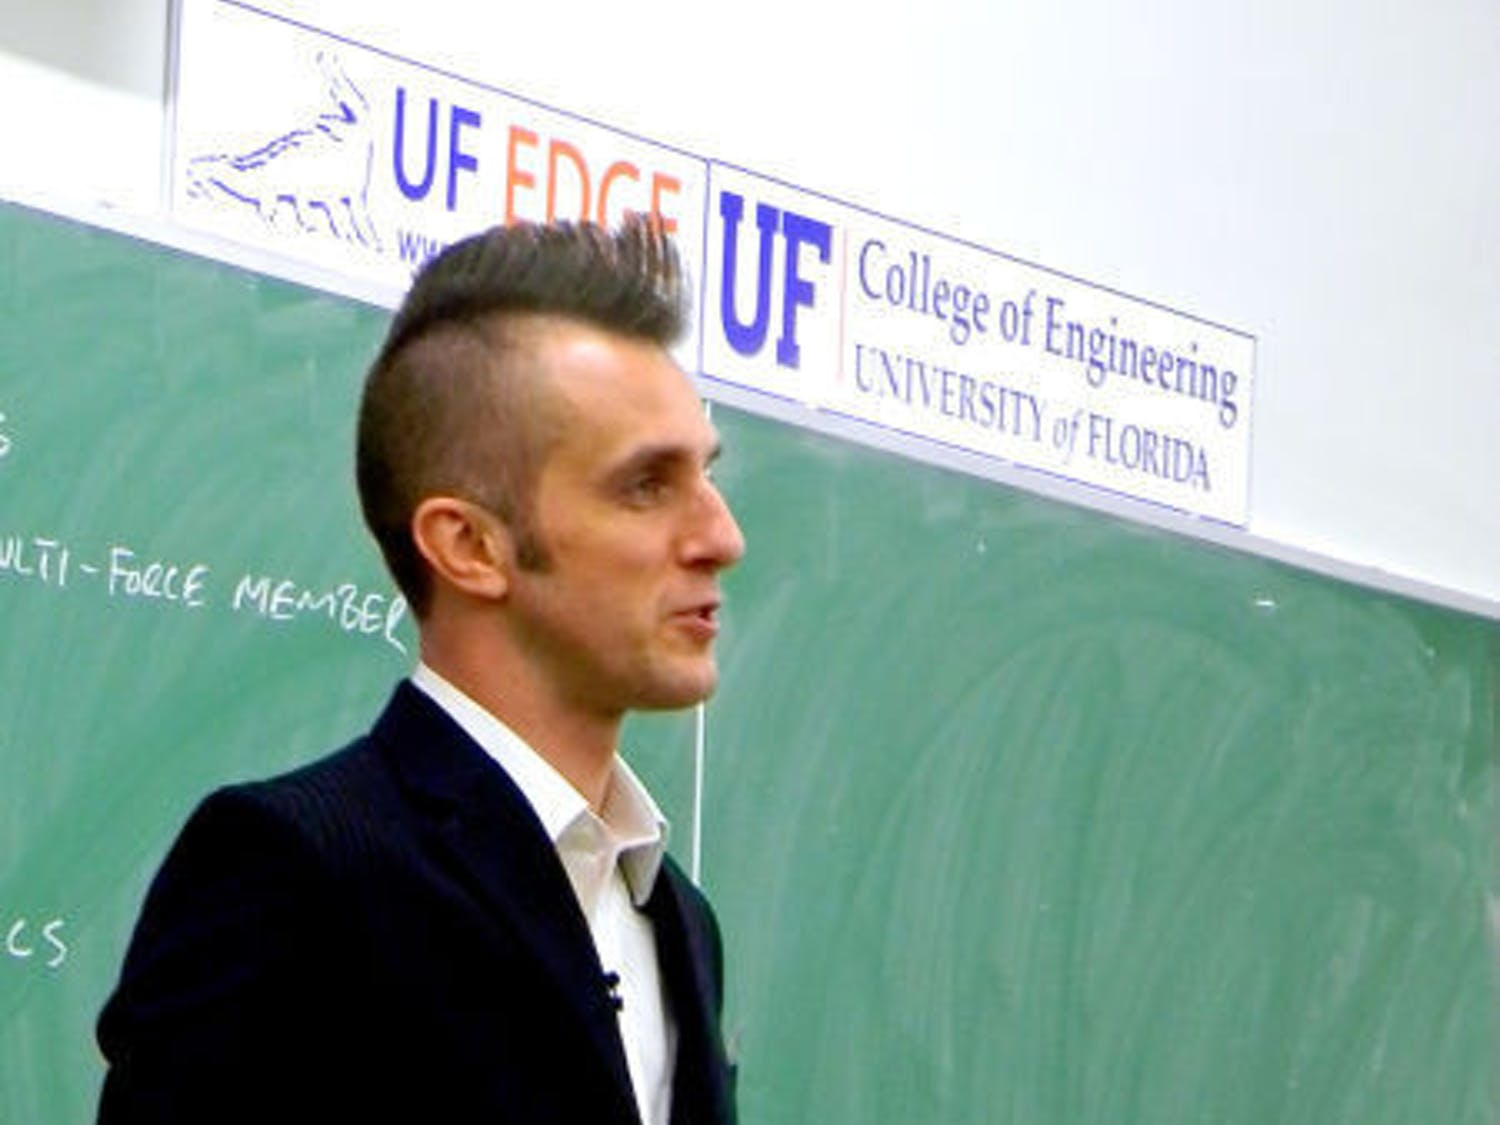 UF engineering professor Dan Dickrell teaches class Wednesday. The professor shaved his hair into a mohawk for basketball season in the style of player Will Yeguete.